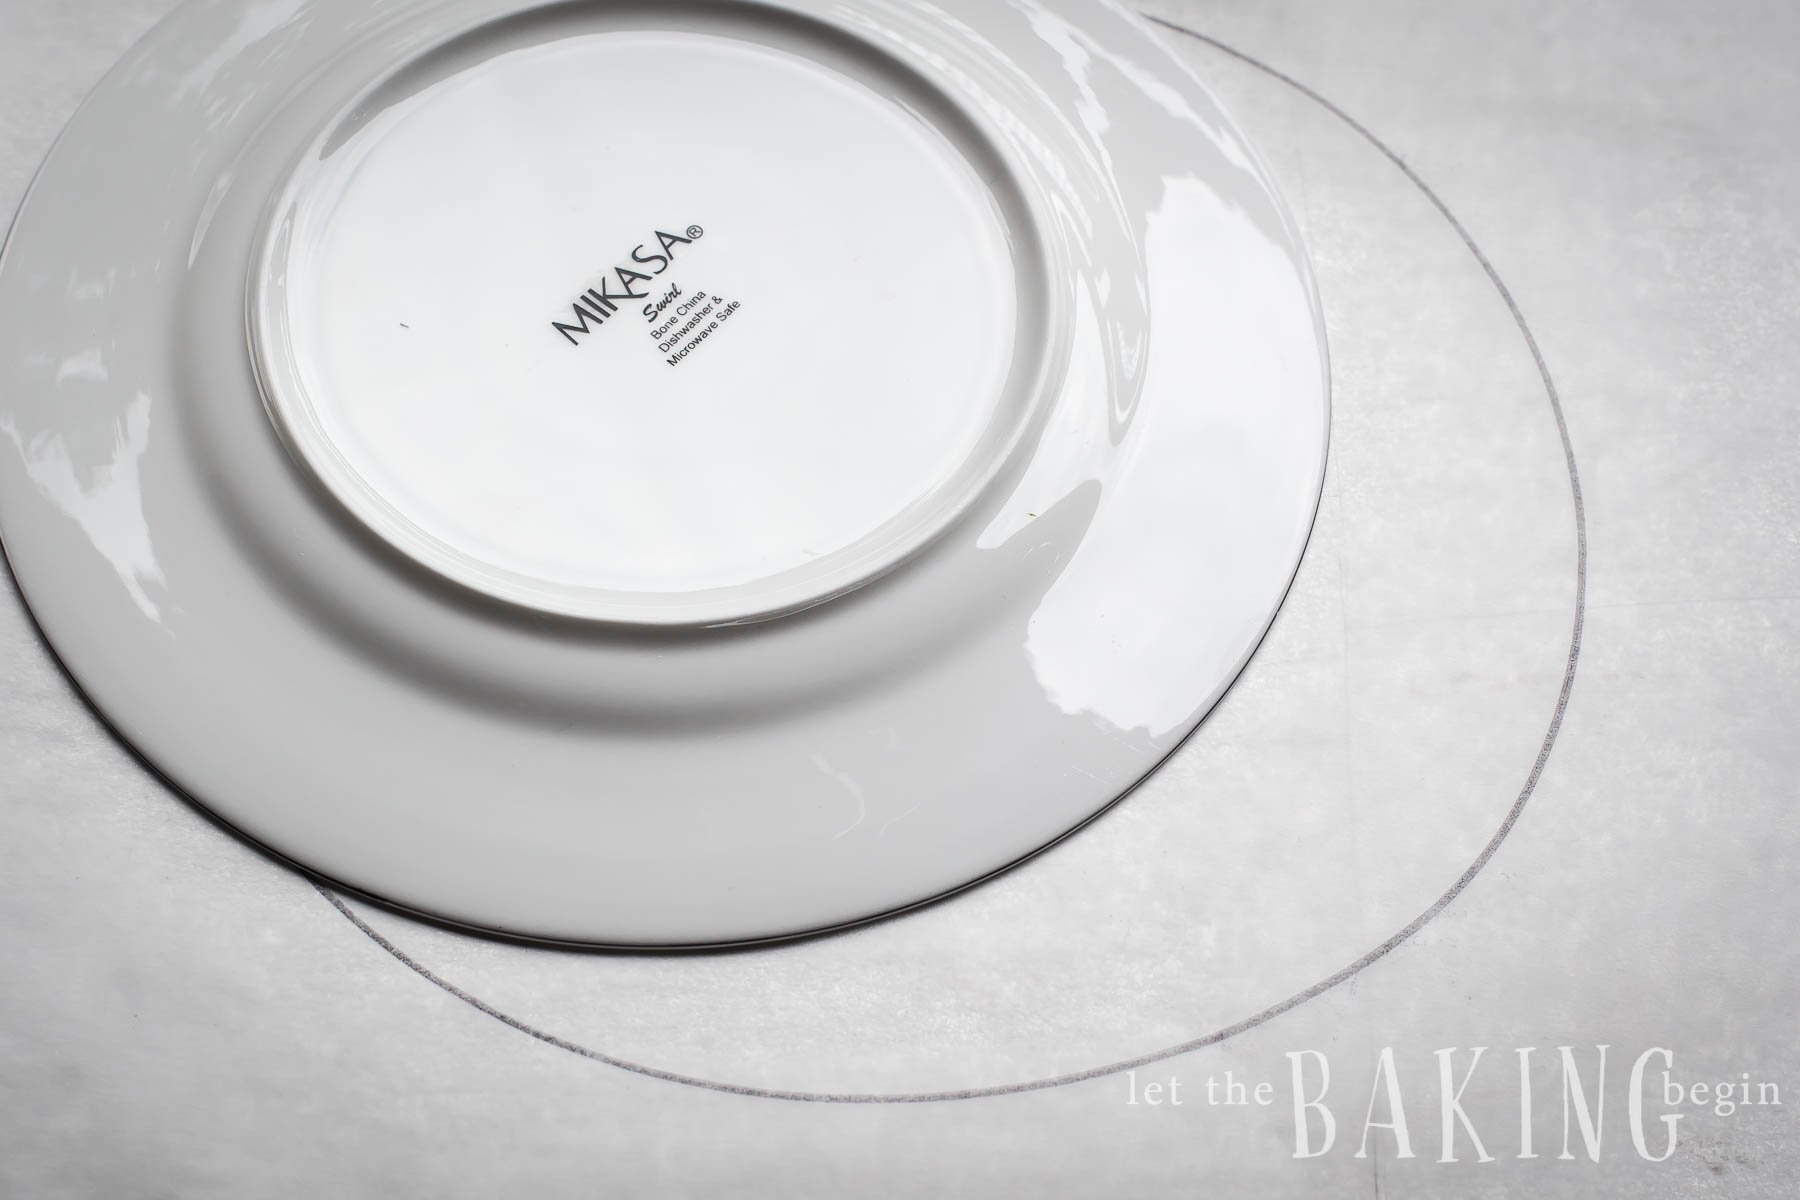 Tracing a circle around a salad plate